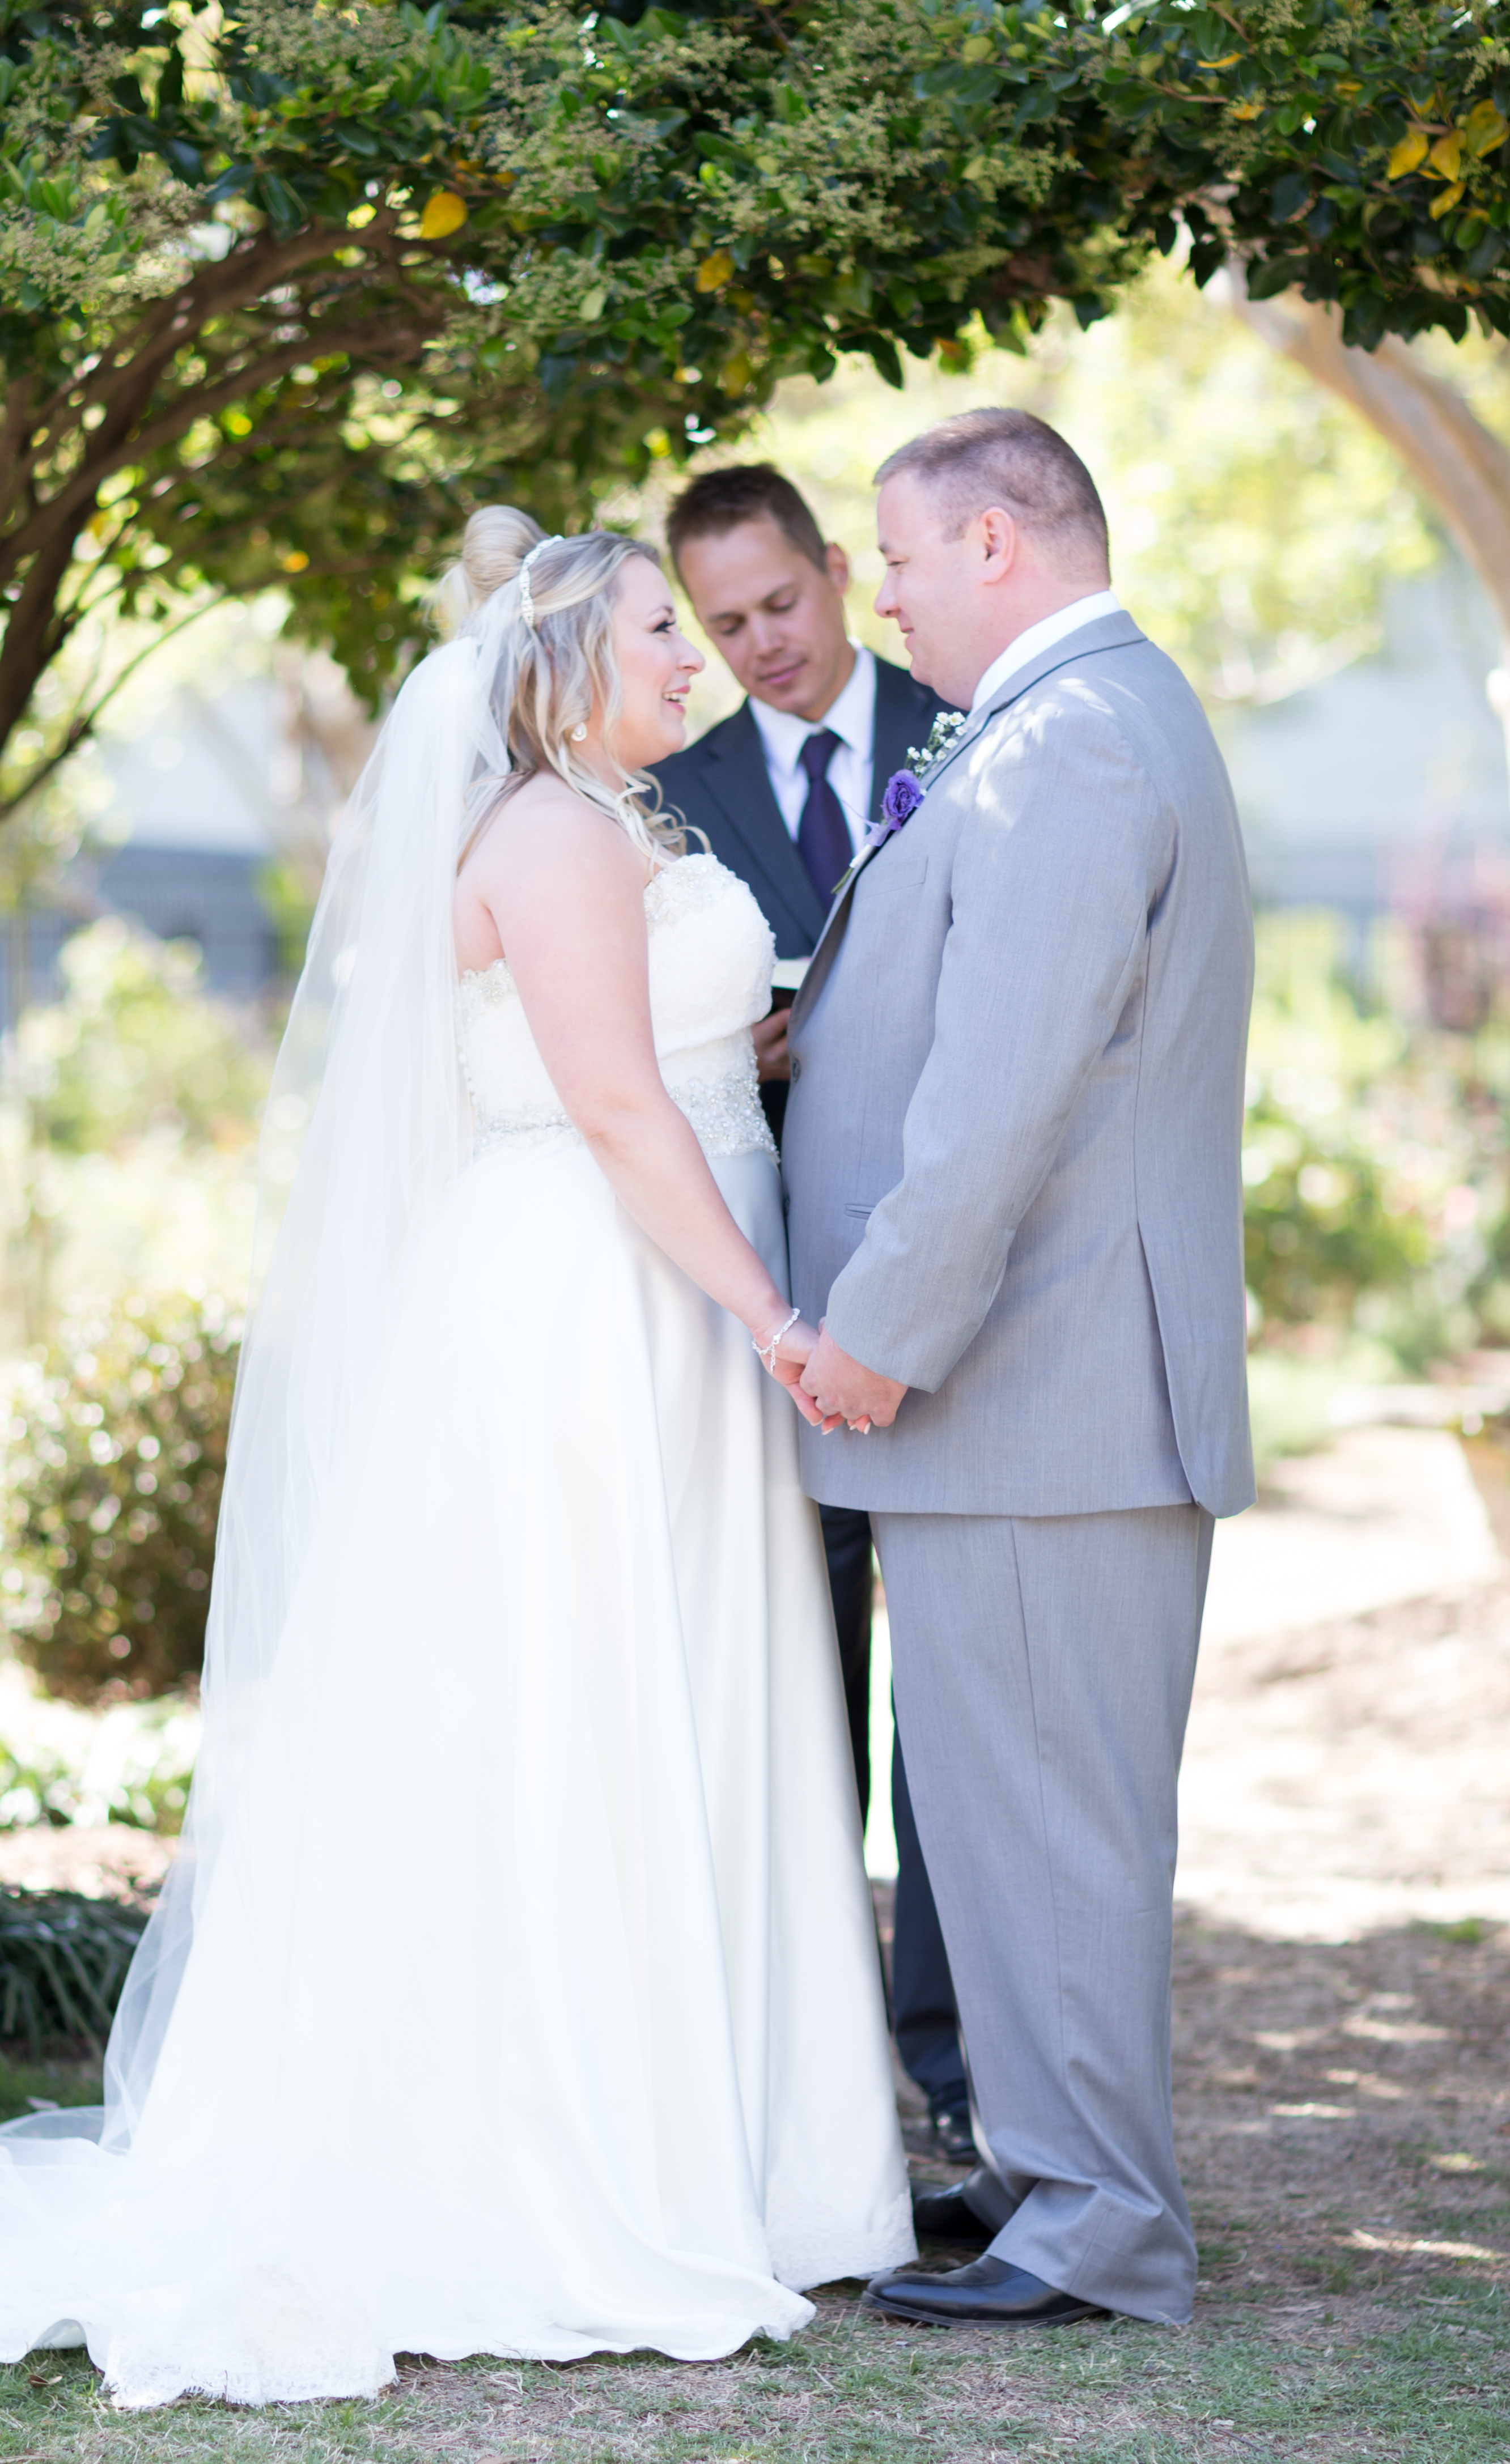 Exchanging vows during their wedding ceremony at McGill Rose Garden in Charlotte NC